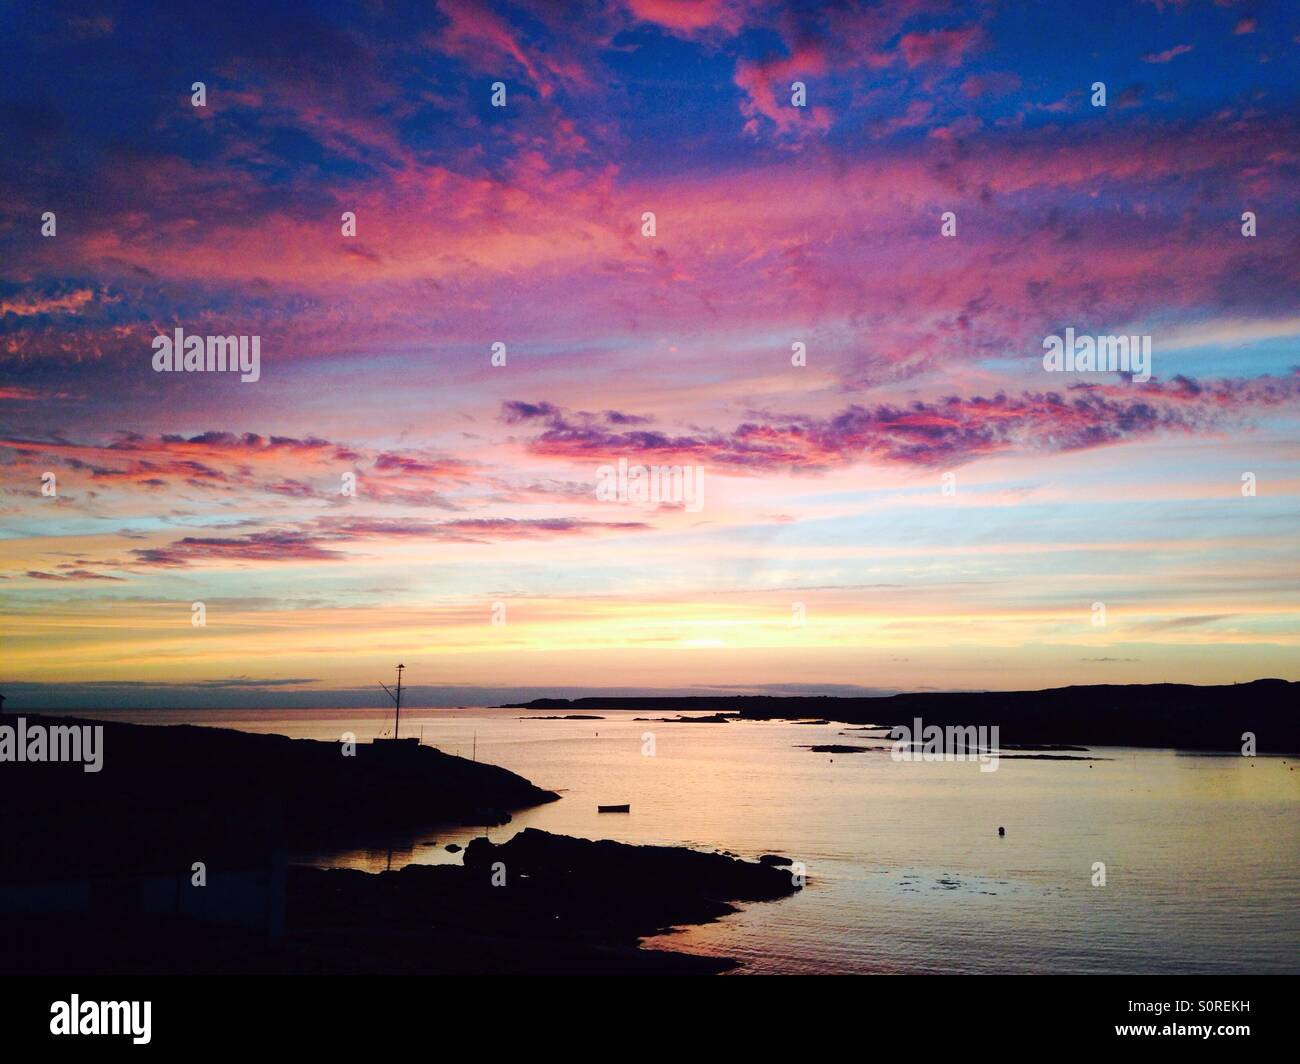 Sunset in Trearddur Bay, Anglesey - Stock Image